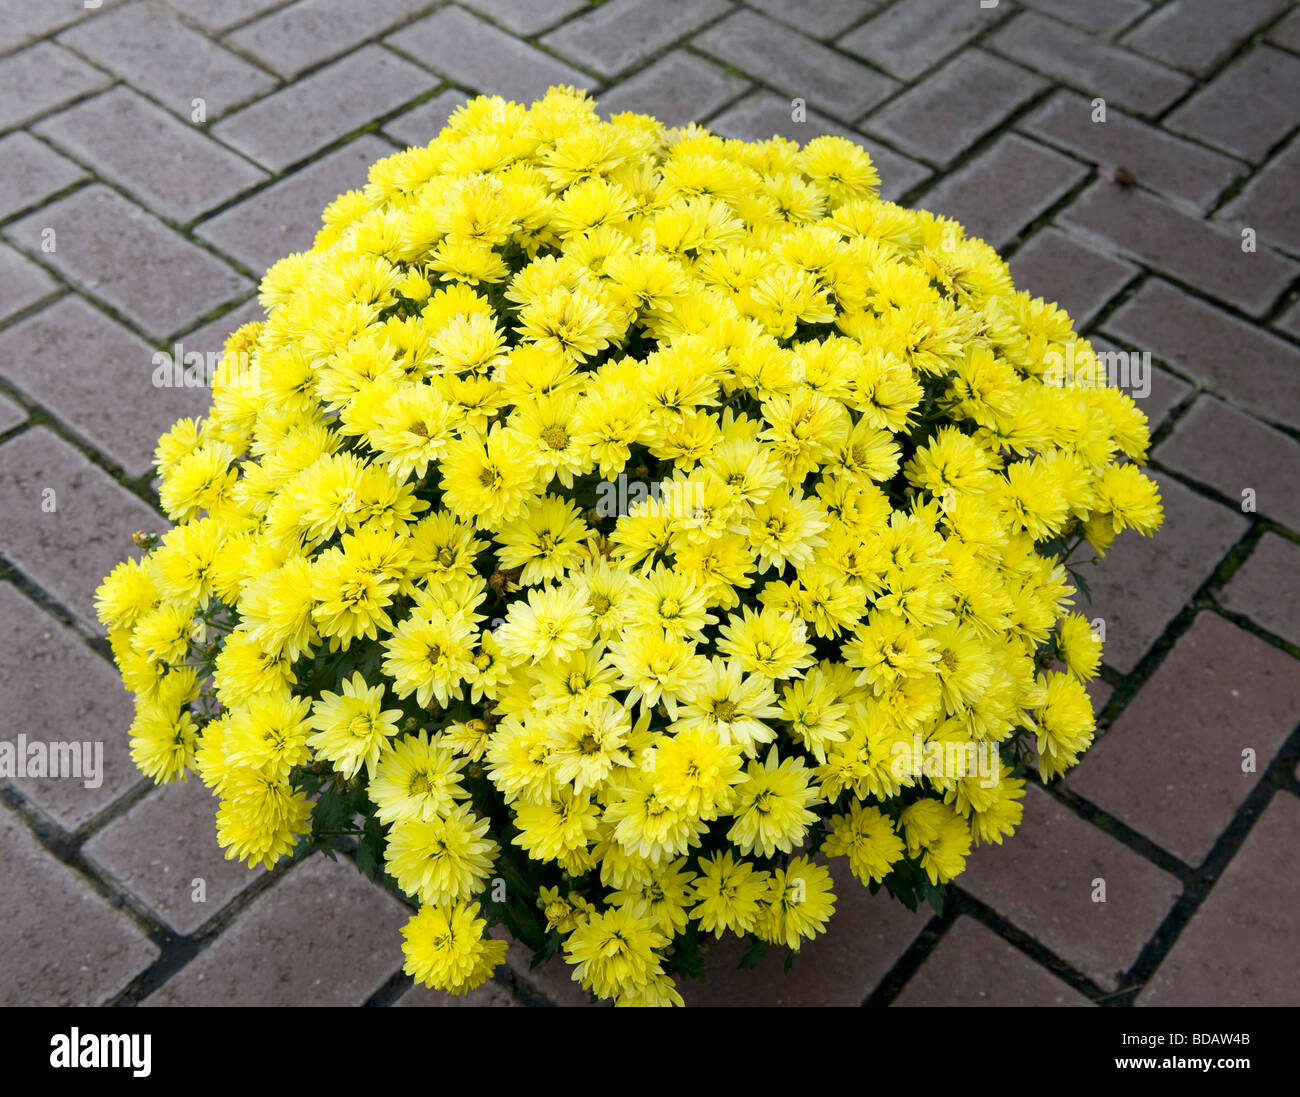 Chrysanthemum `Golden Chalice`. Bushy pot grown plant with bright yellow flowers in a dome shape. - Stock Image